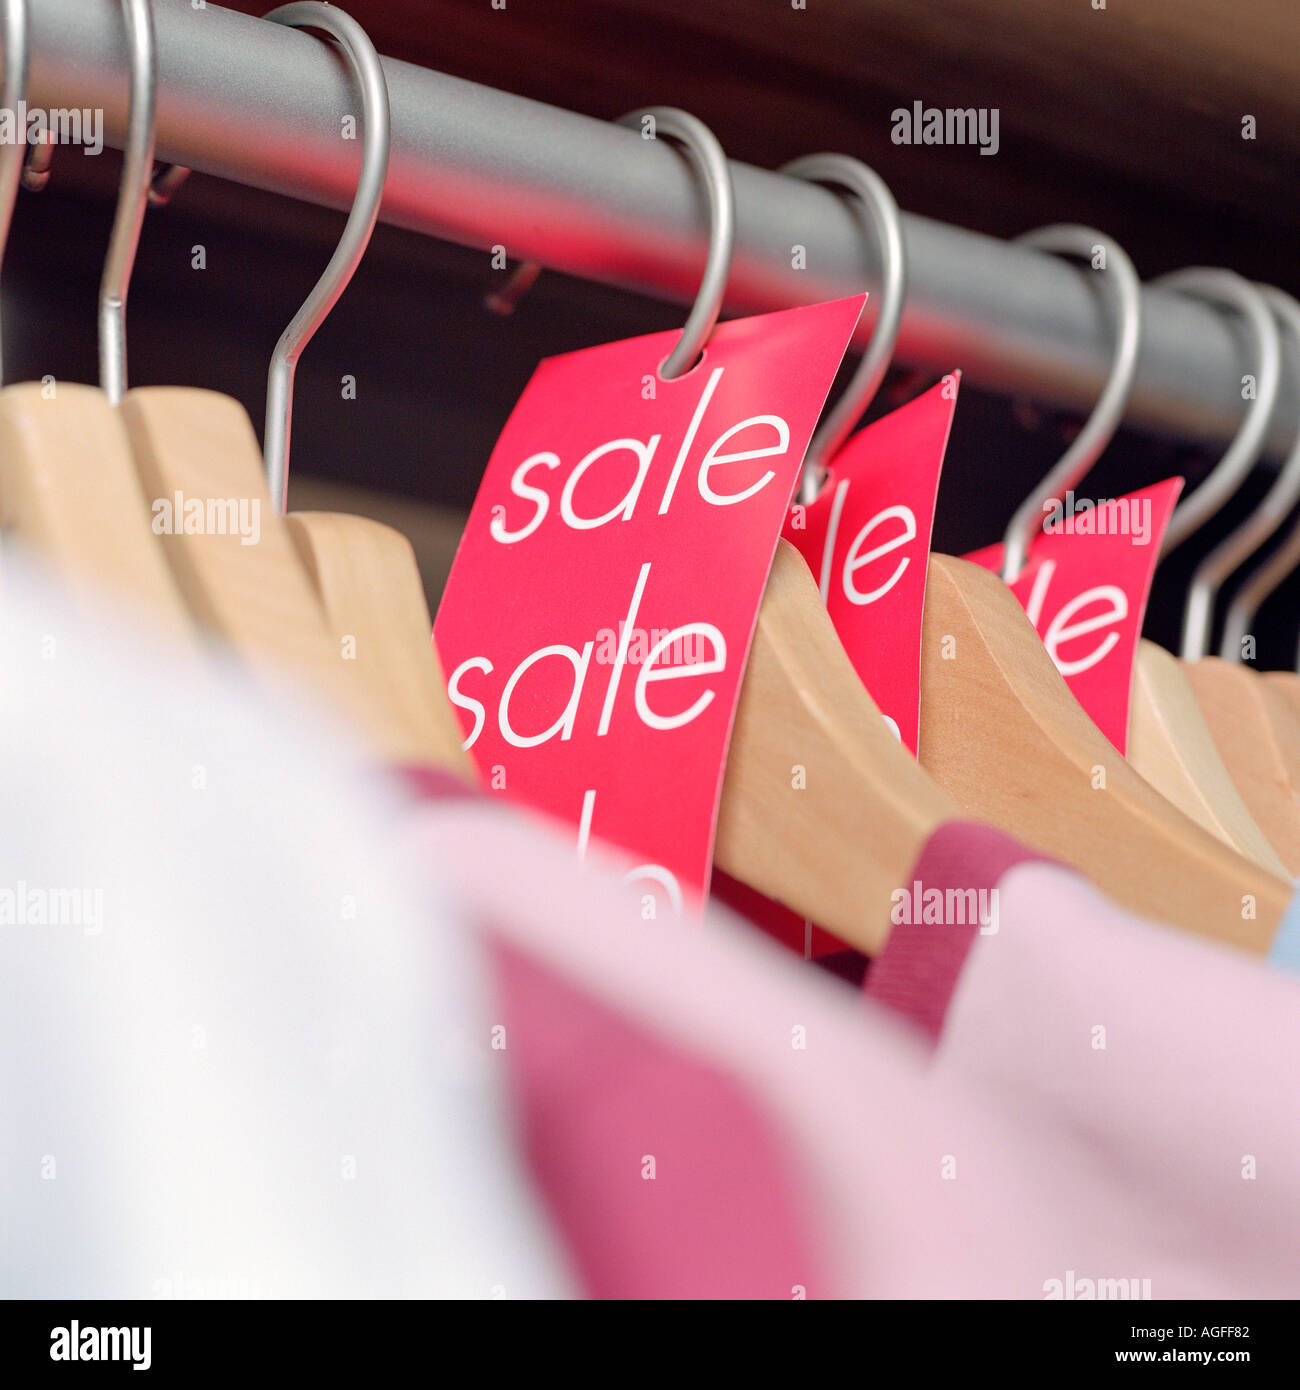 Sale labels on clothes hangers - Stock Image